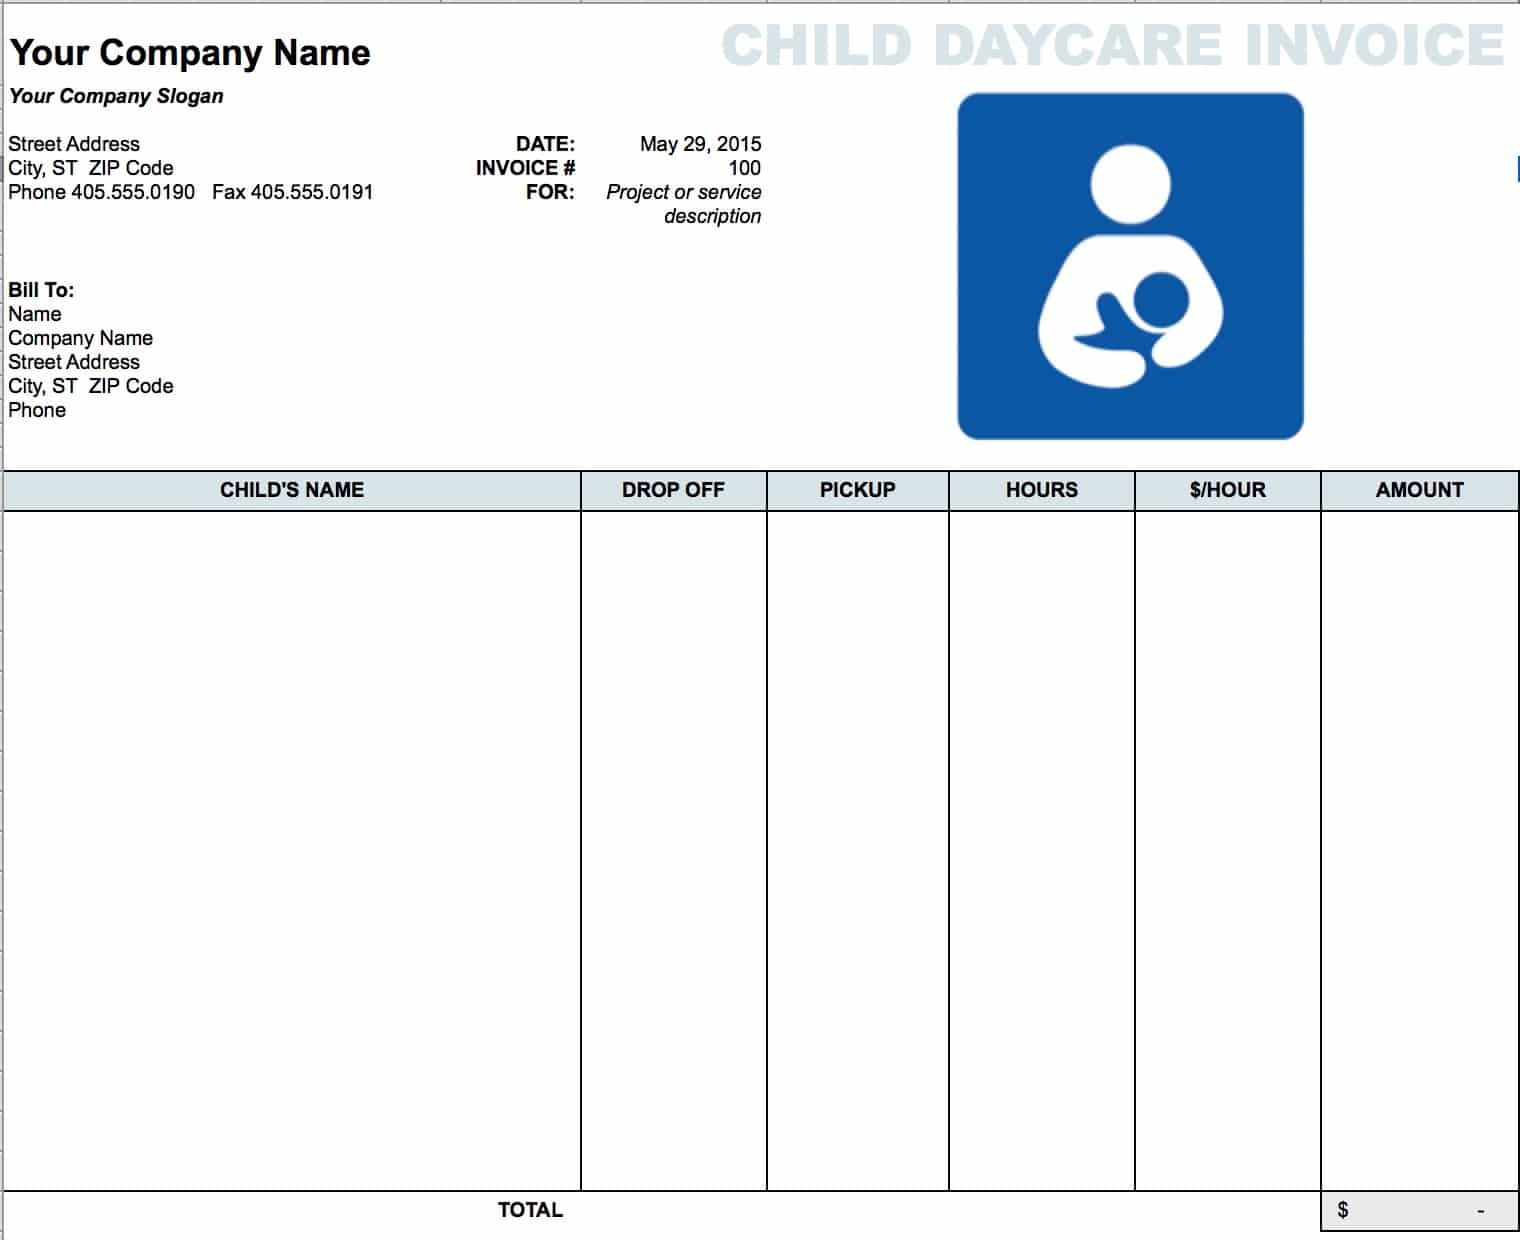 Free Daycare Child Invoice Template Excel PDF Word Doc - Online child care invoice